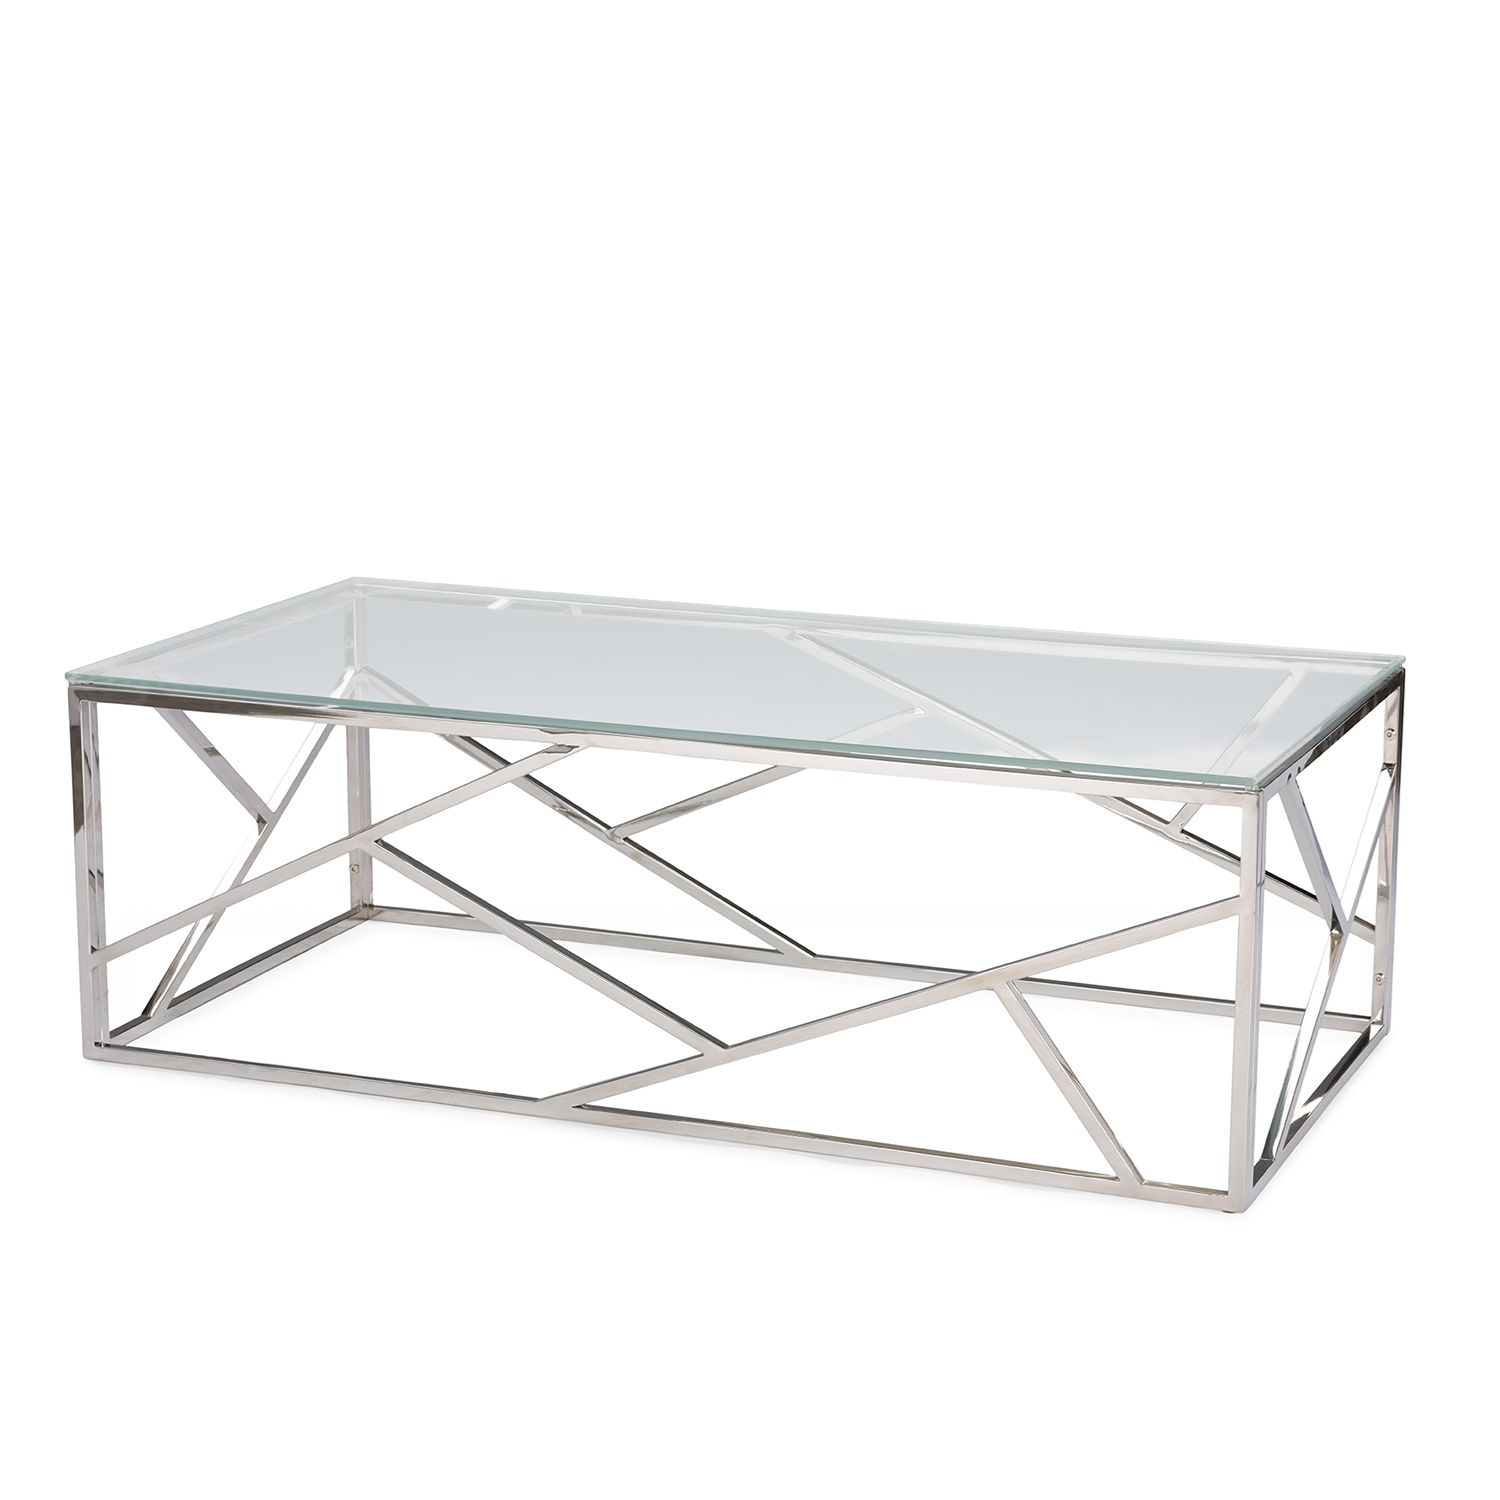 ... Baxton Studio Fiona Modern And Contemporary Stainless Steel Coffee Table  With Tempered Glass Top   BSOGY ...